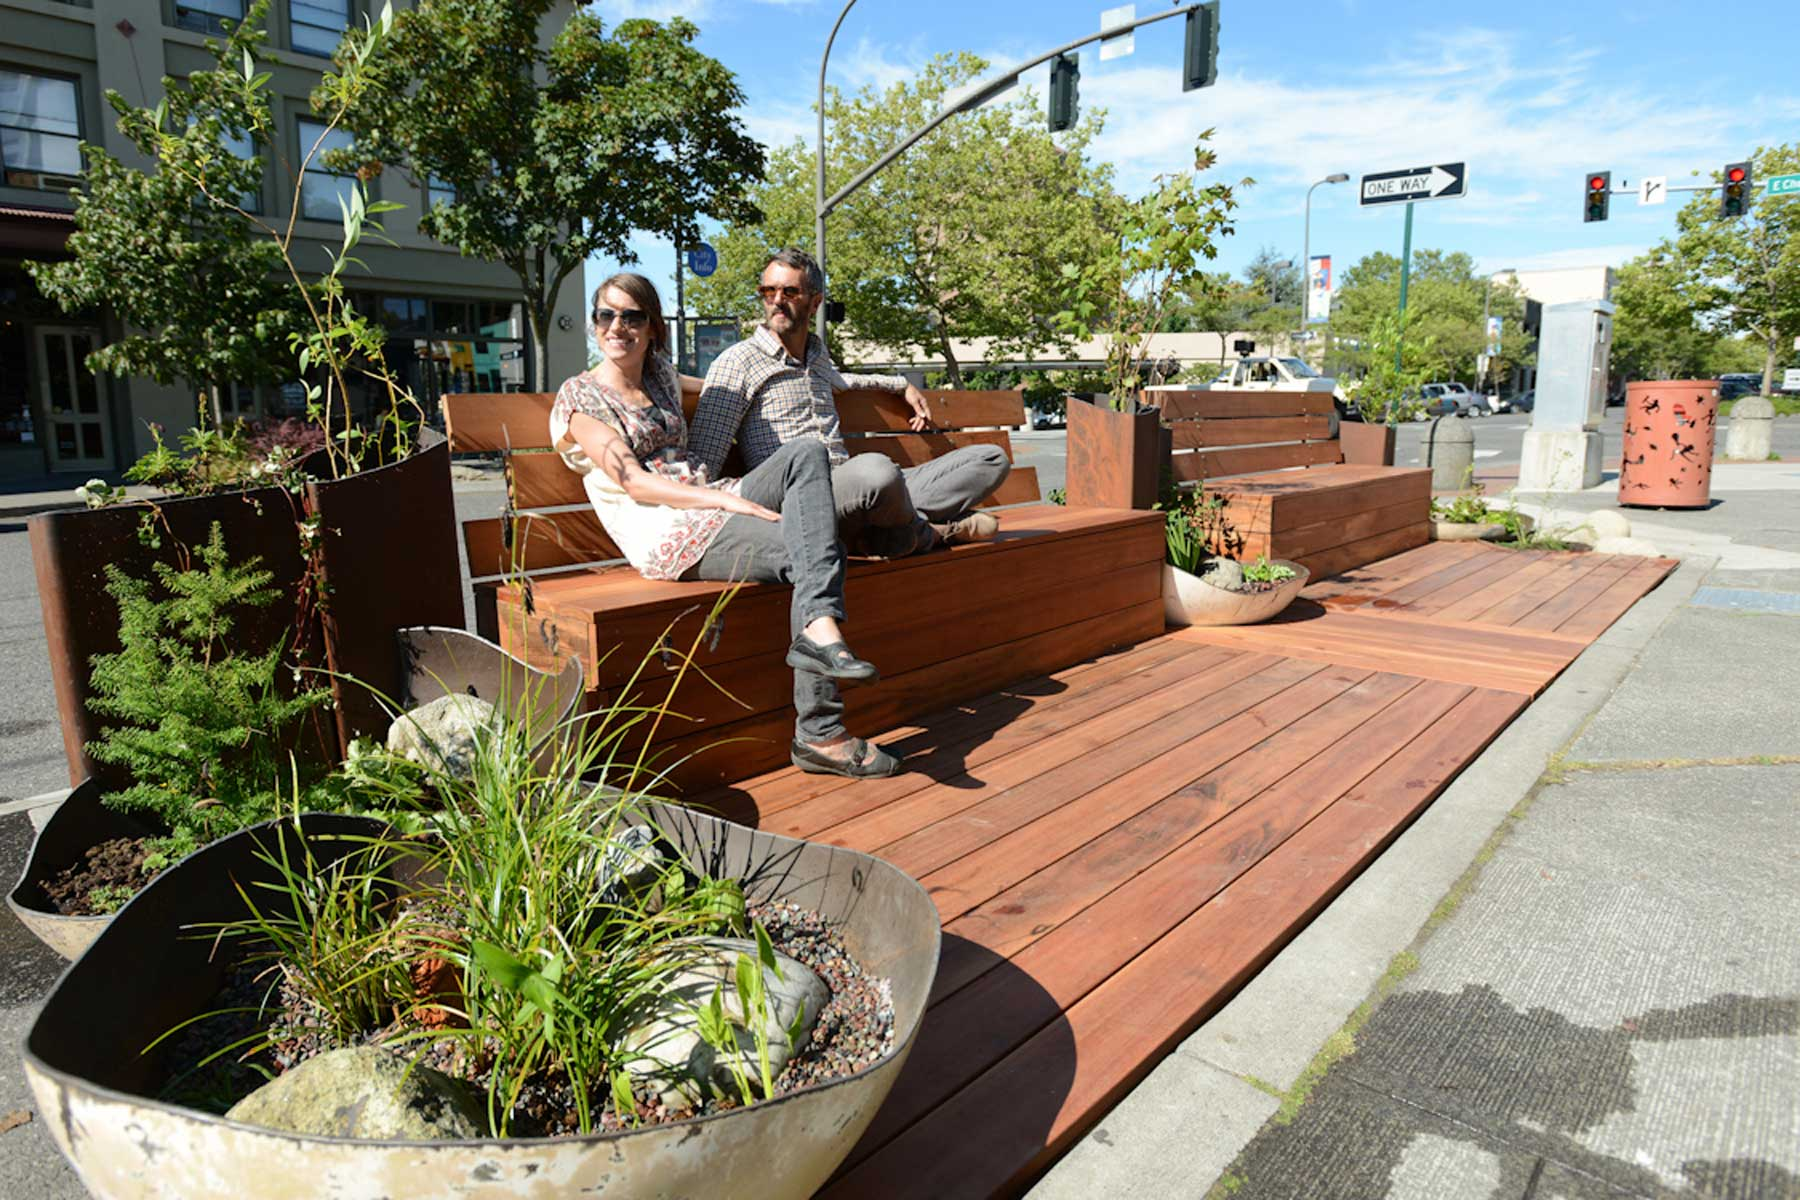 2365-SustainableConnections_Parklet.jpg